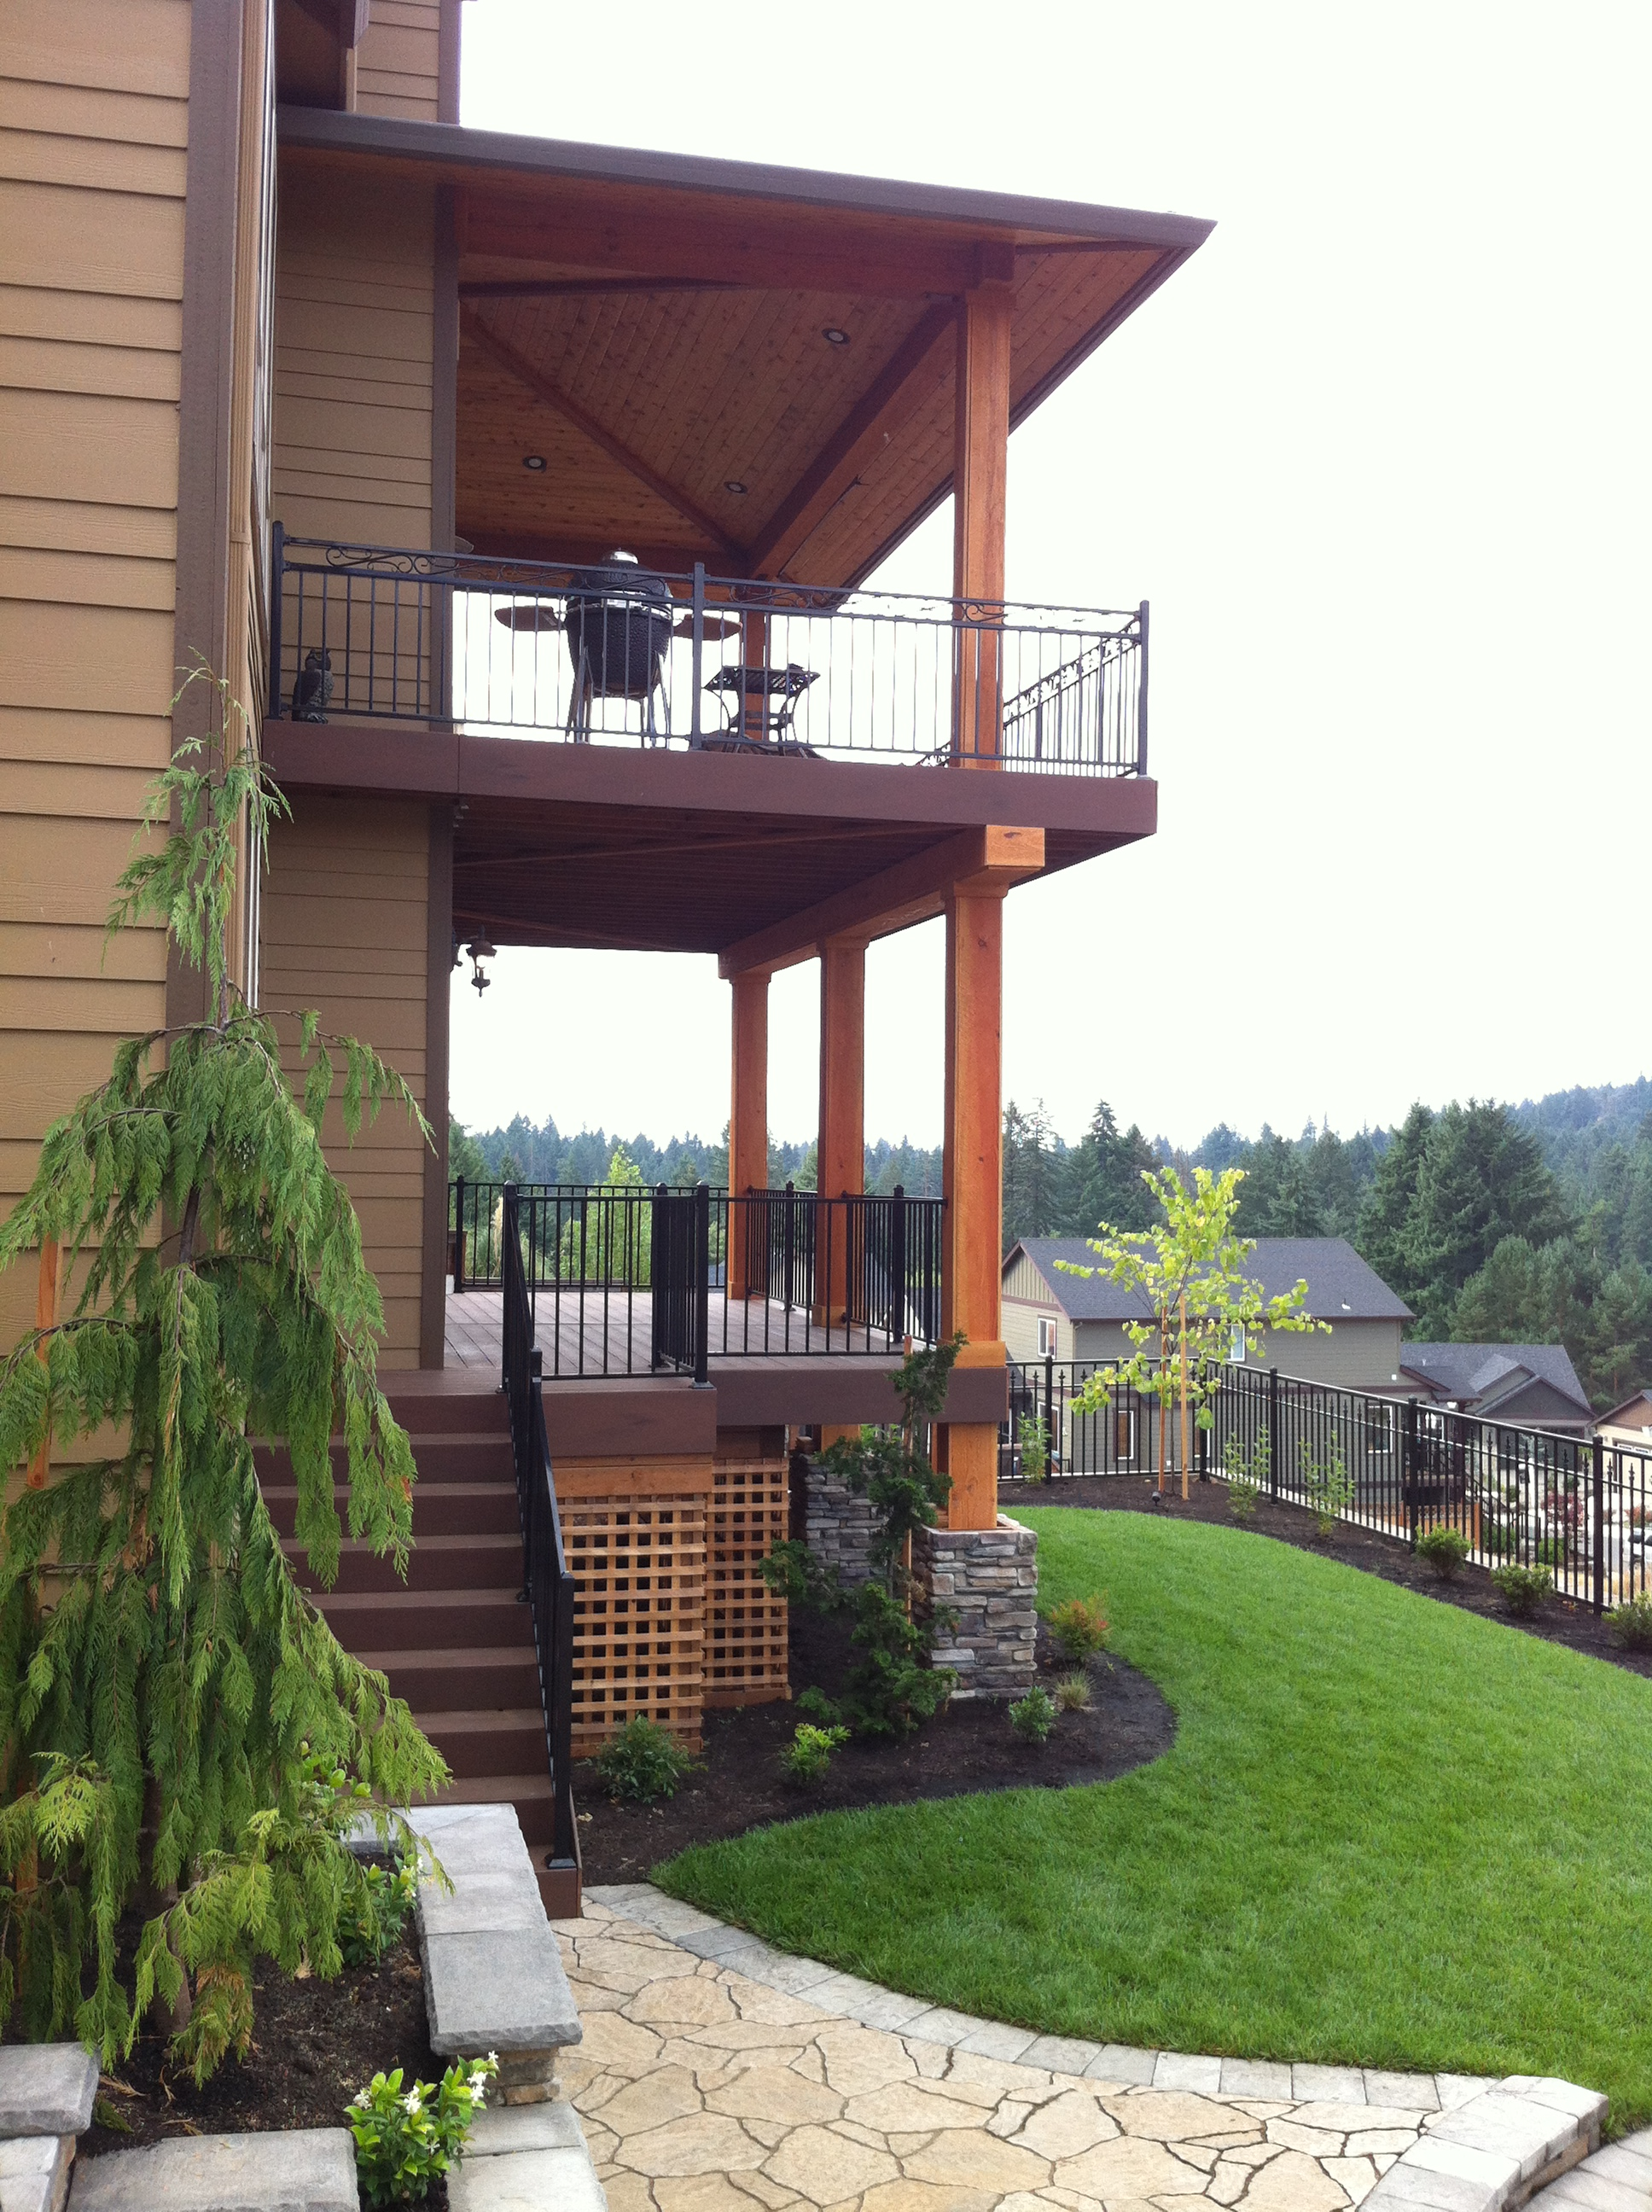 This Project Has 30u2032 8×8 Post In 5u2032 Deep Footings In Order Support The  Nearly 3 Story High Patio Cover And Decks. It Has Timber Beams, Timber Tech  Composite ...